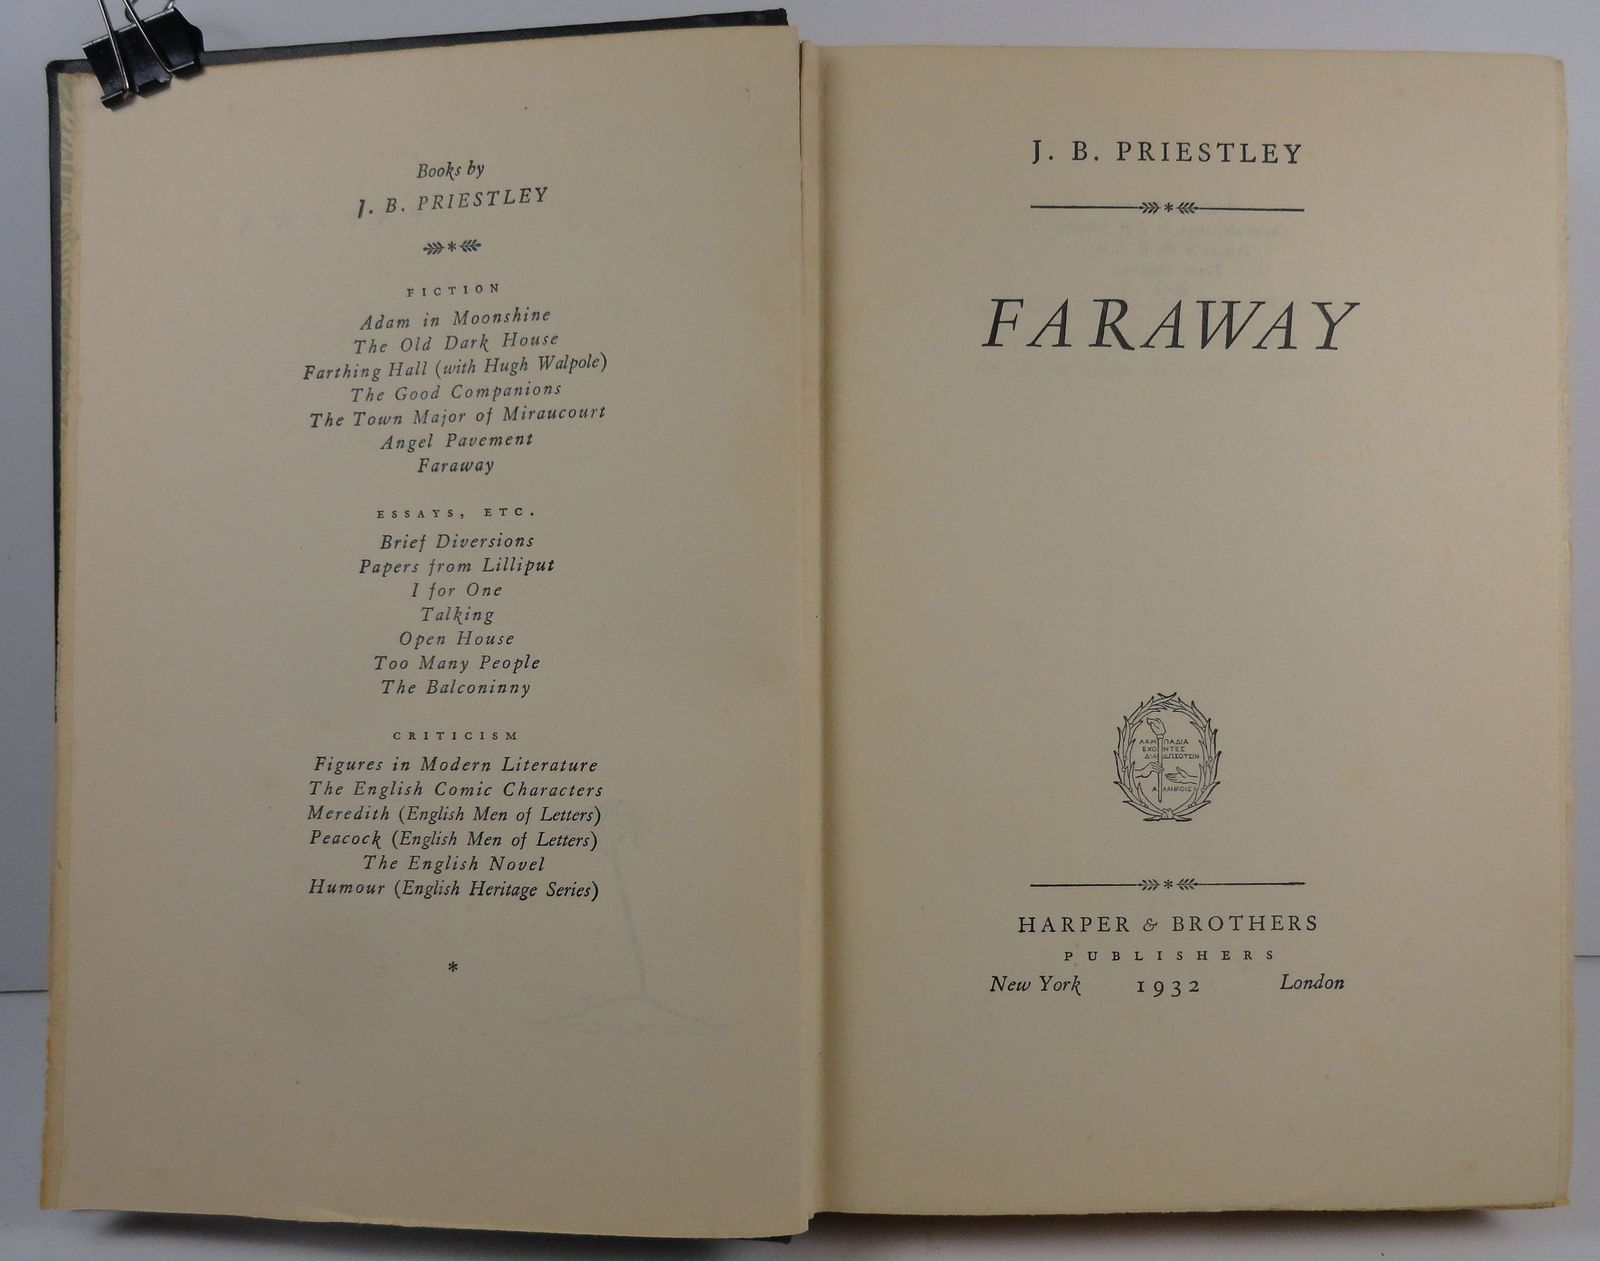 Faraway by J. B. Priestley 1932 Harper and Brothers